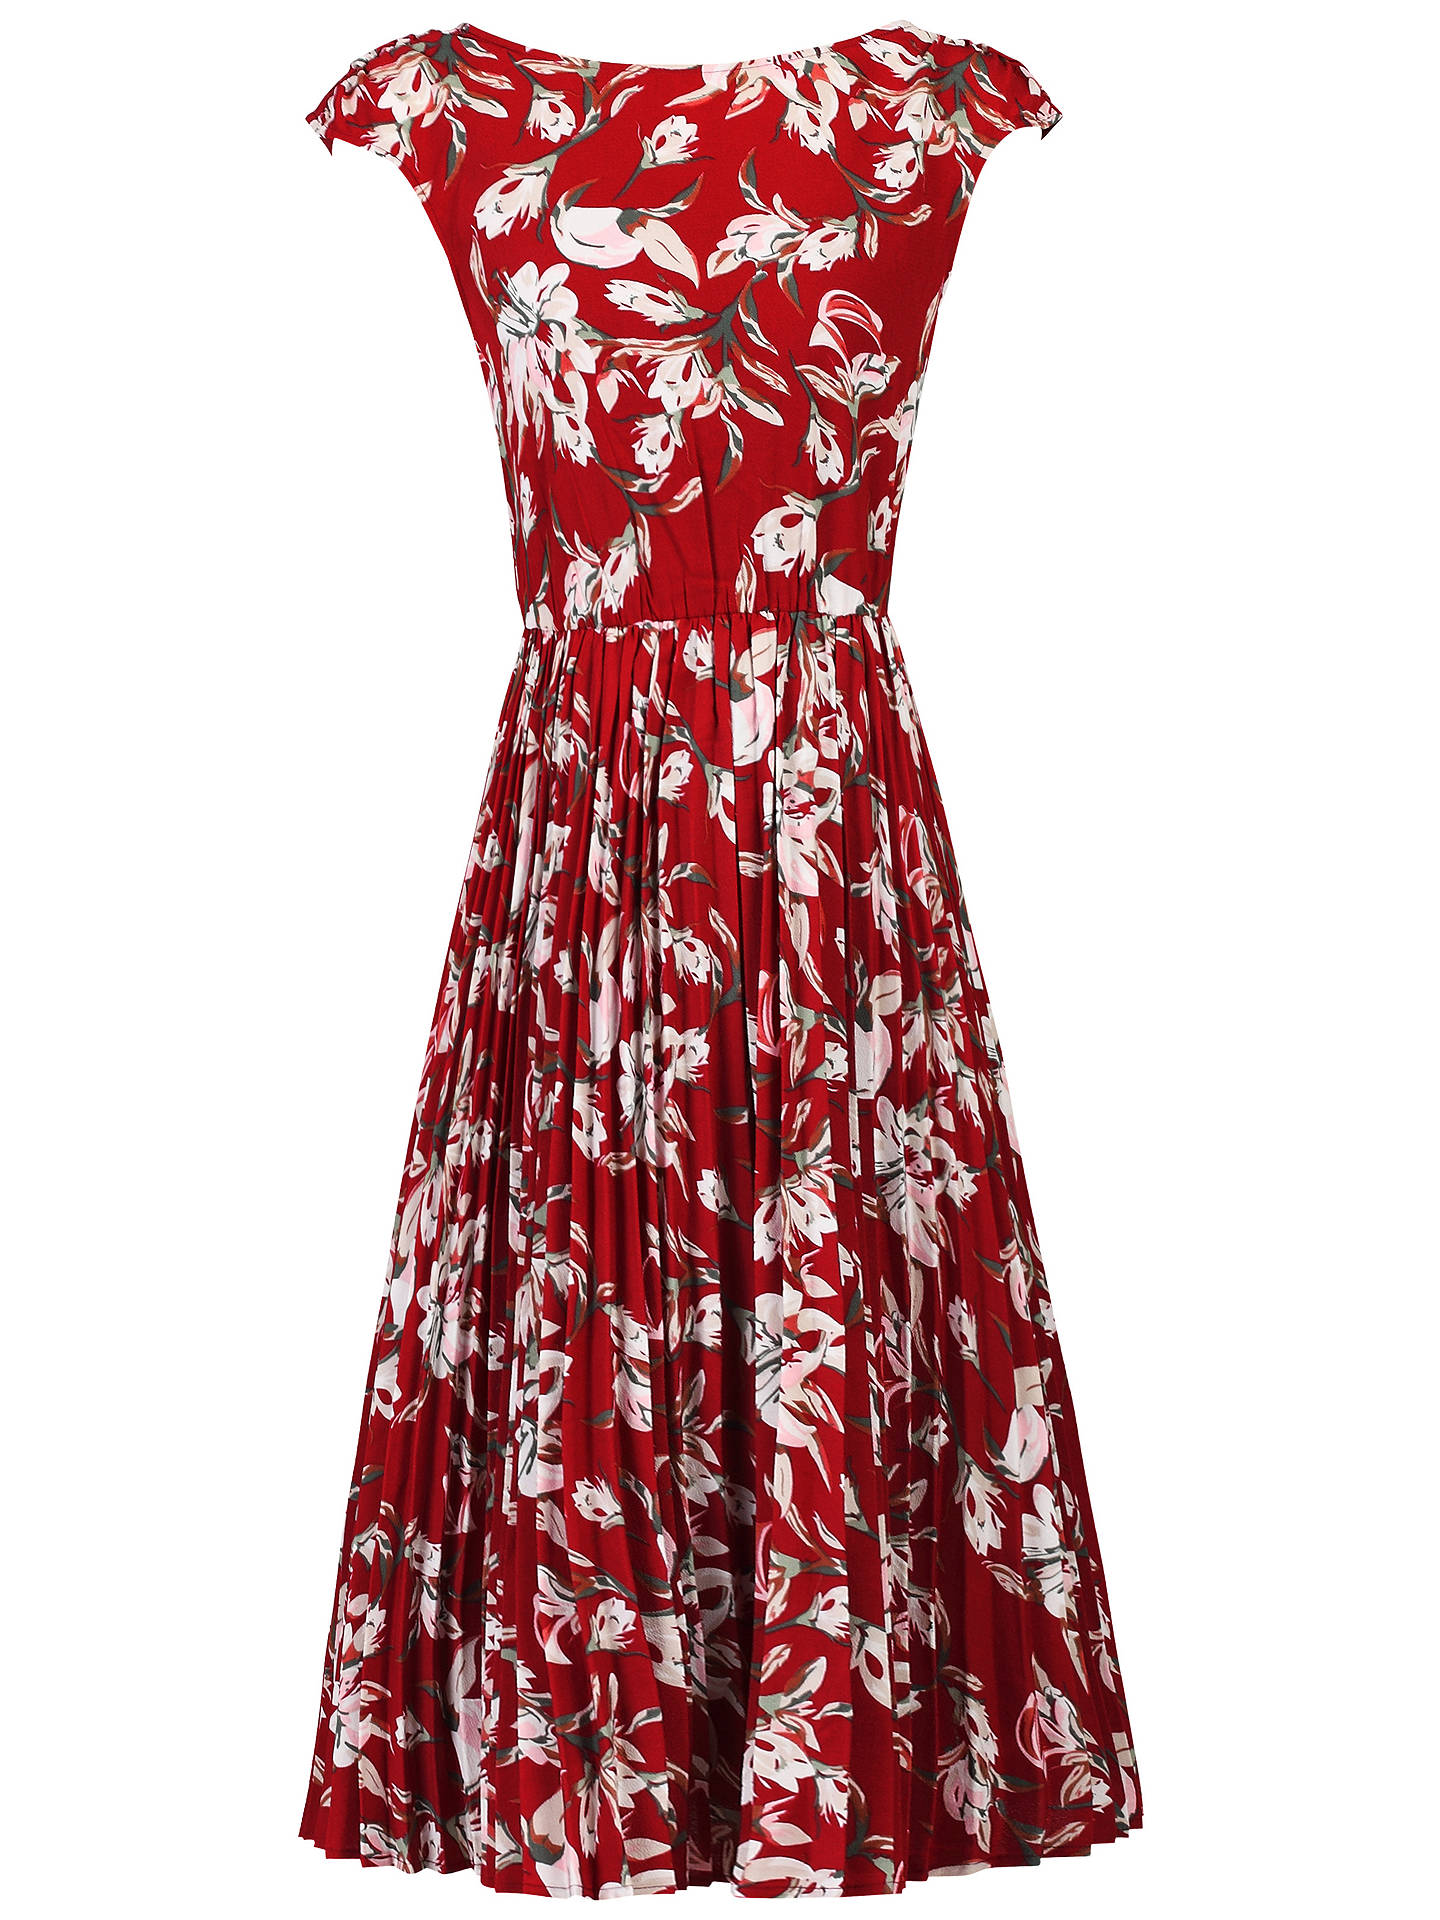 479db8de0a84 ... Buy Jolie Moi Floral Print Pleated Tea Dress, Red/Multi, 8 Online at ...